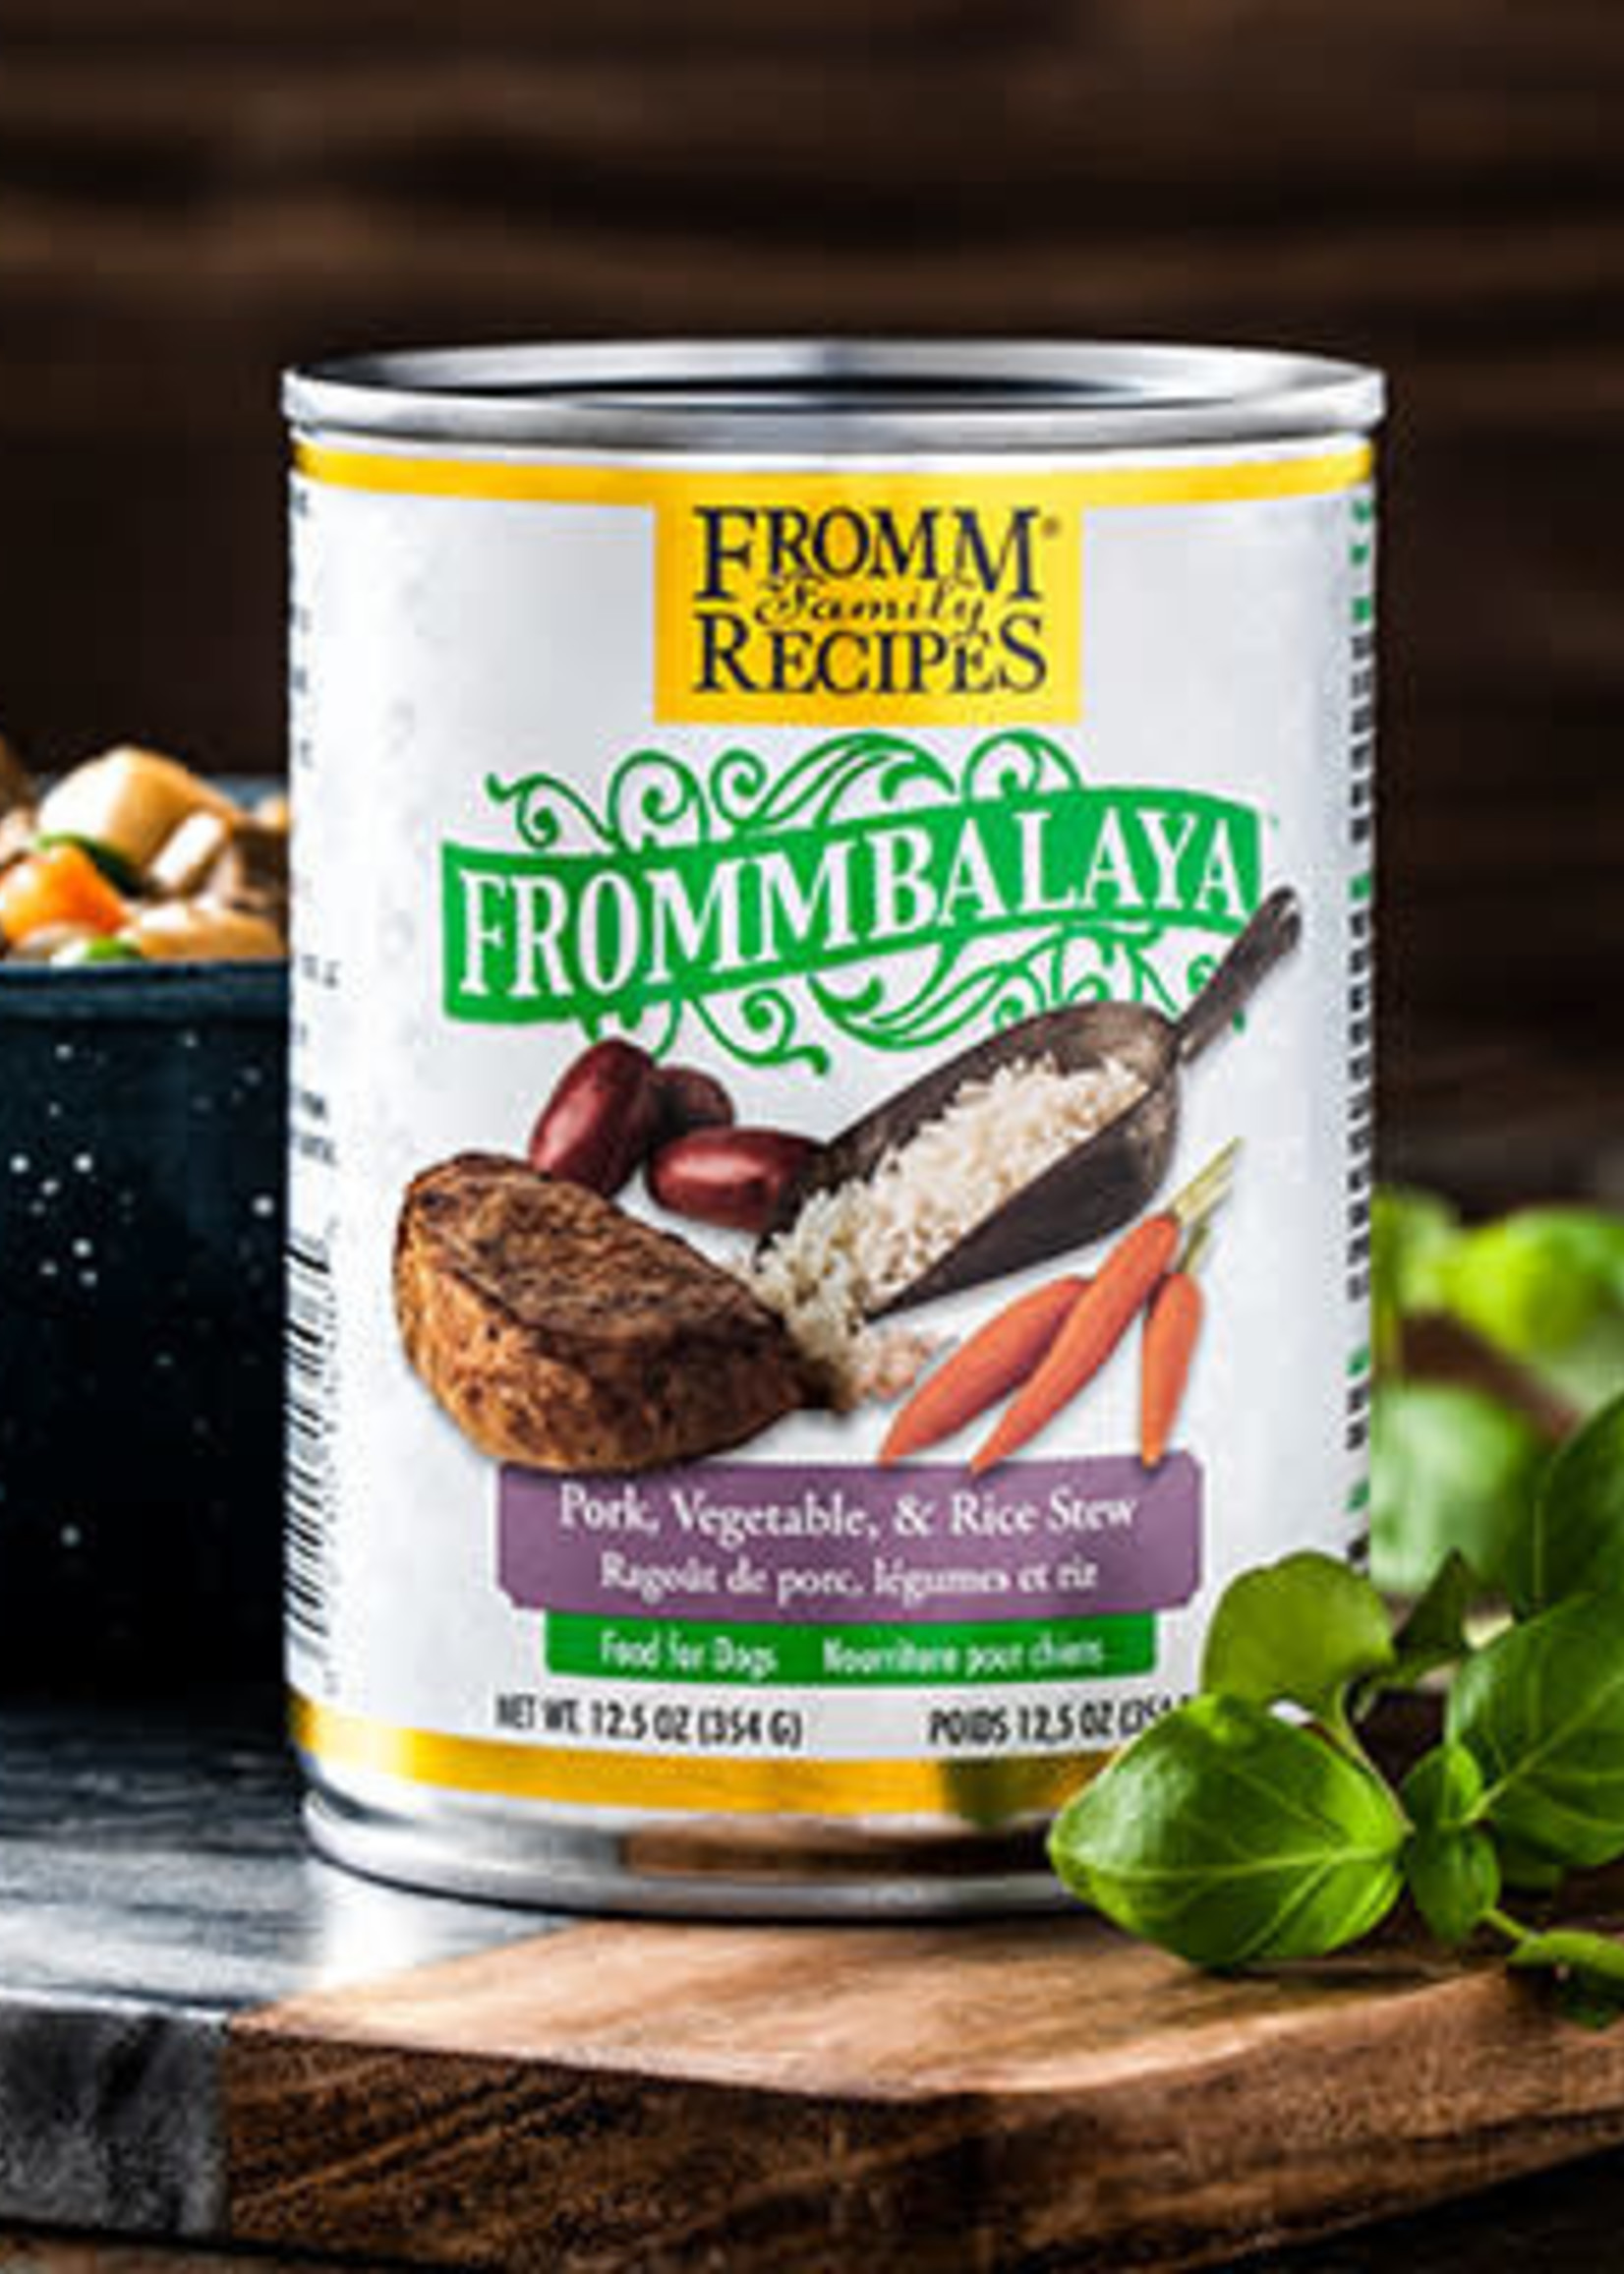 Fromm Family Foods, LLC Fromm Frommbalaya K9 Pork, Vegetable, & Rice Stew 12.5oz